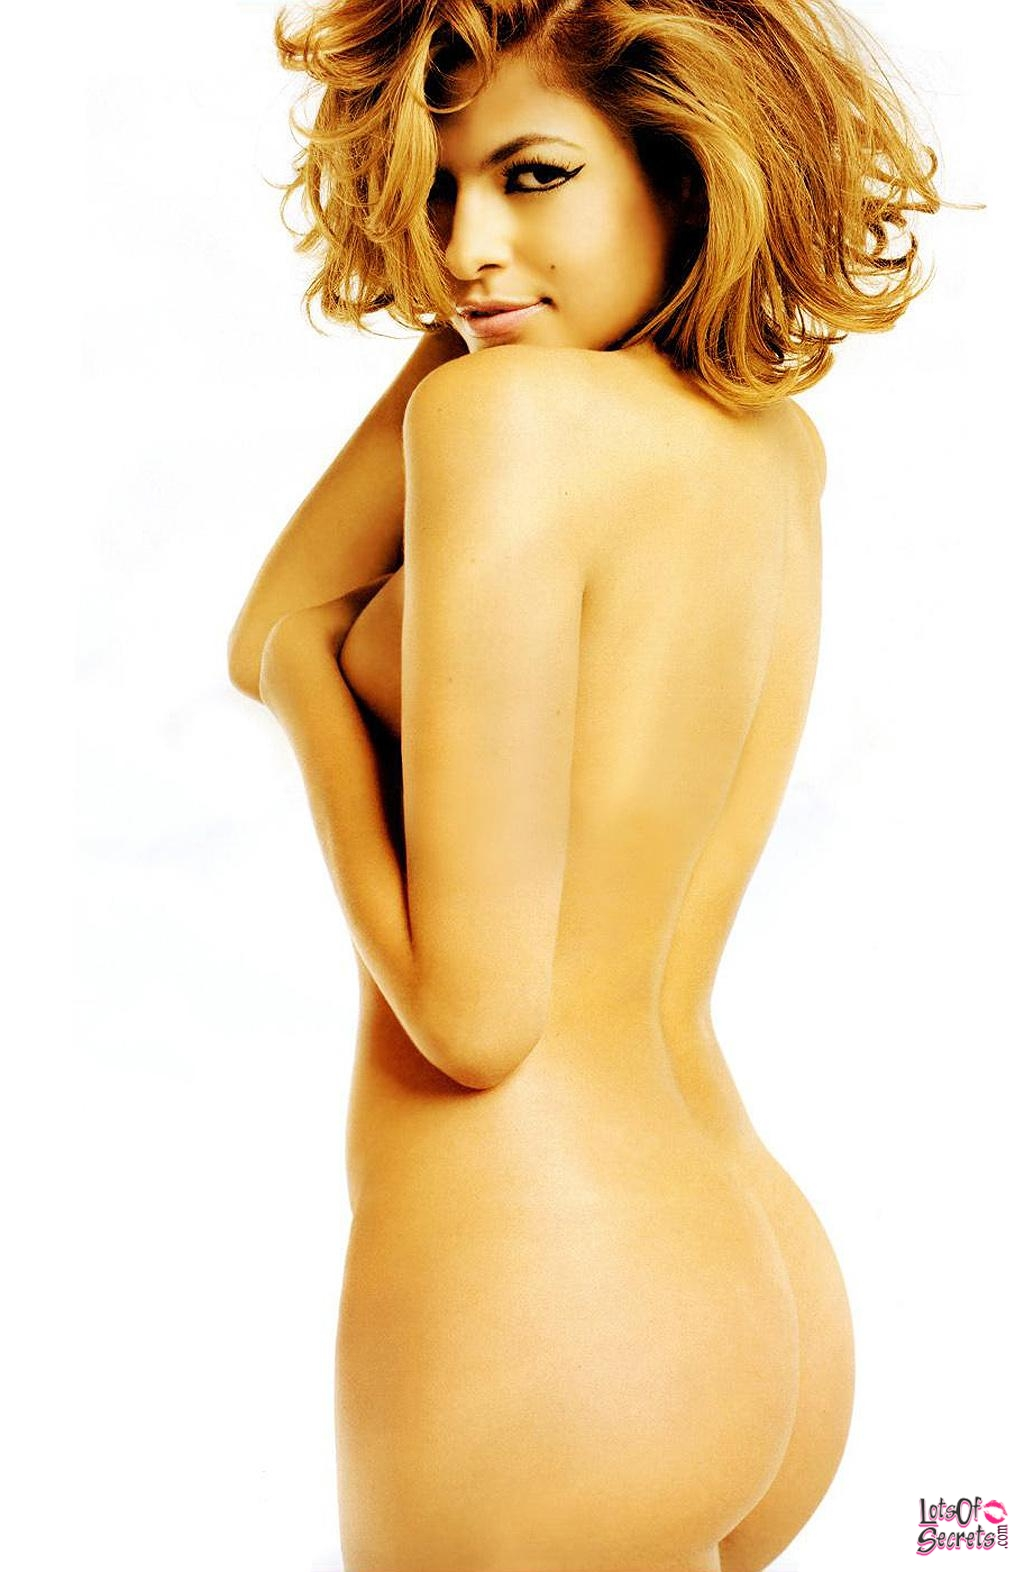 Right! eva mendes sexy pics are not